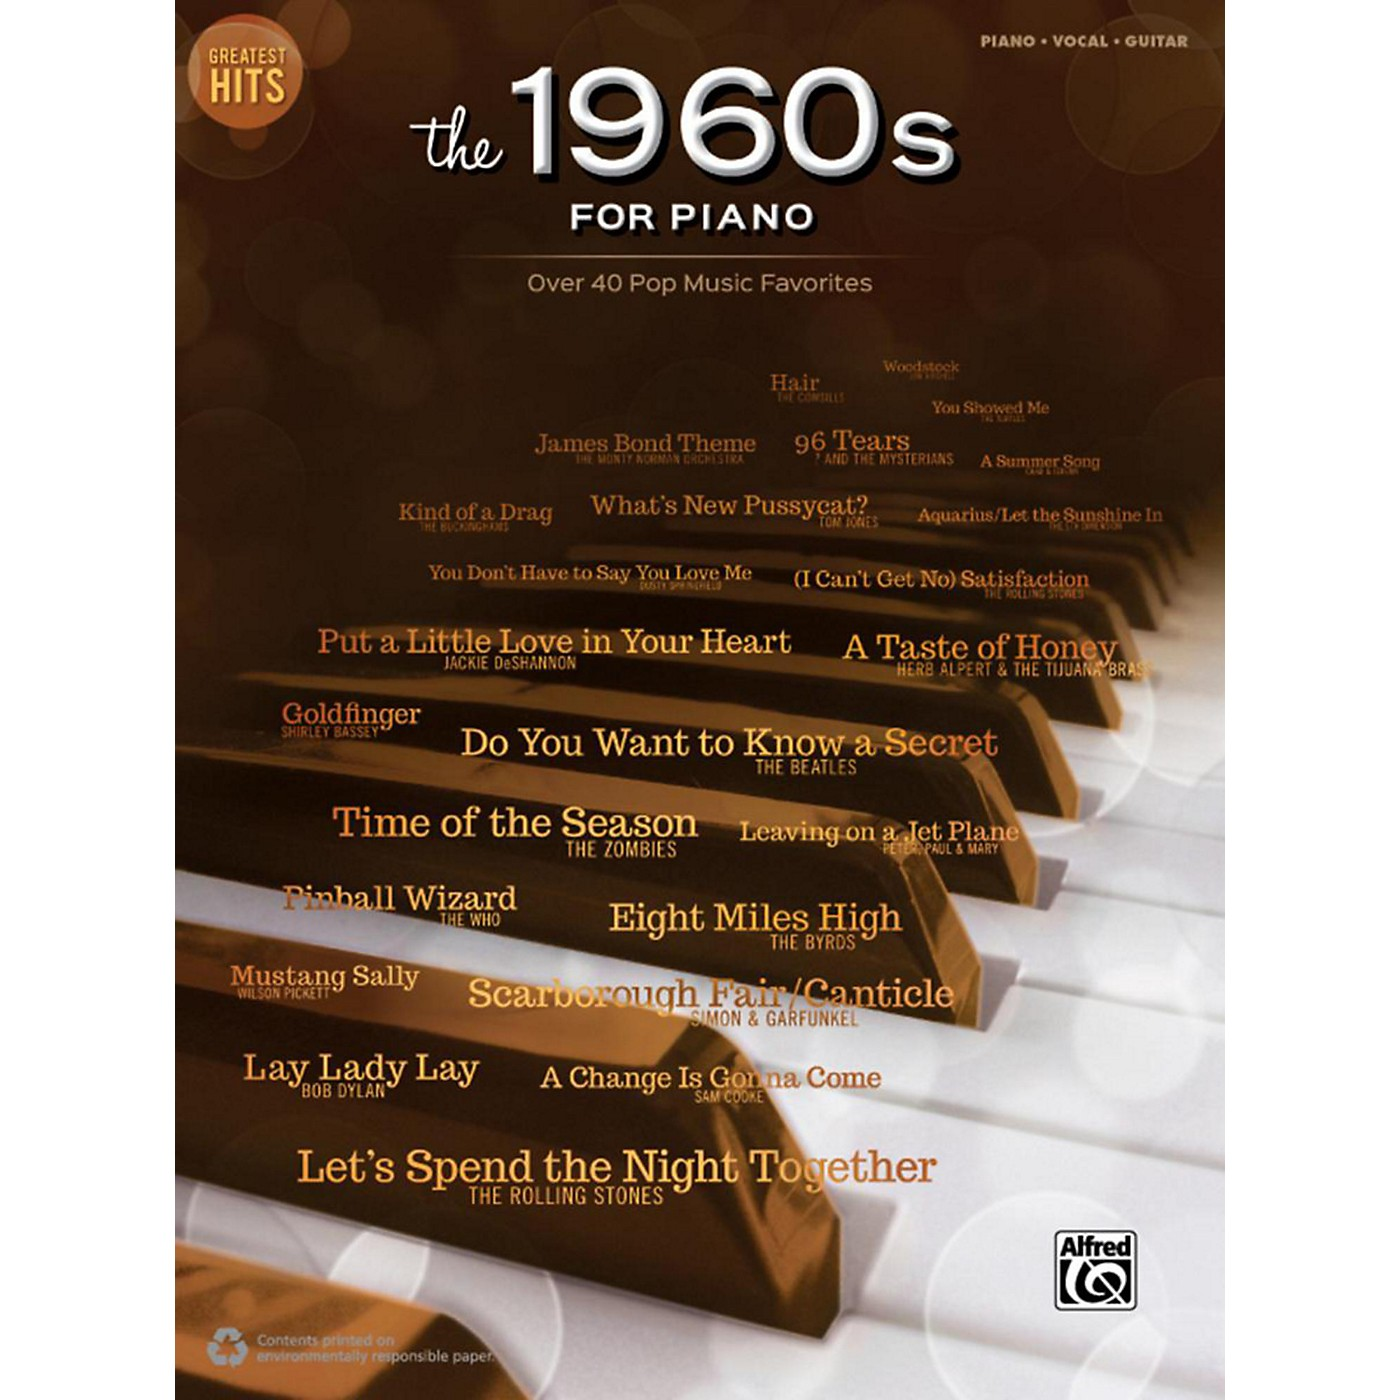 Alfred Greatest Hits: The 1960s for Piano Piano/Vocal/Guitar thumbnail